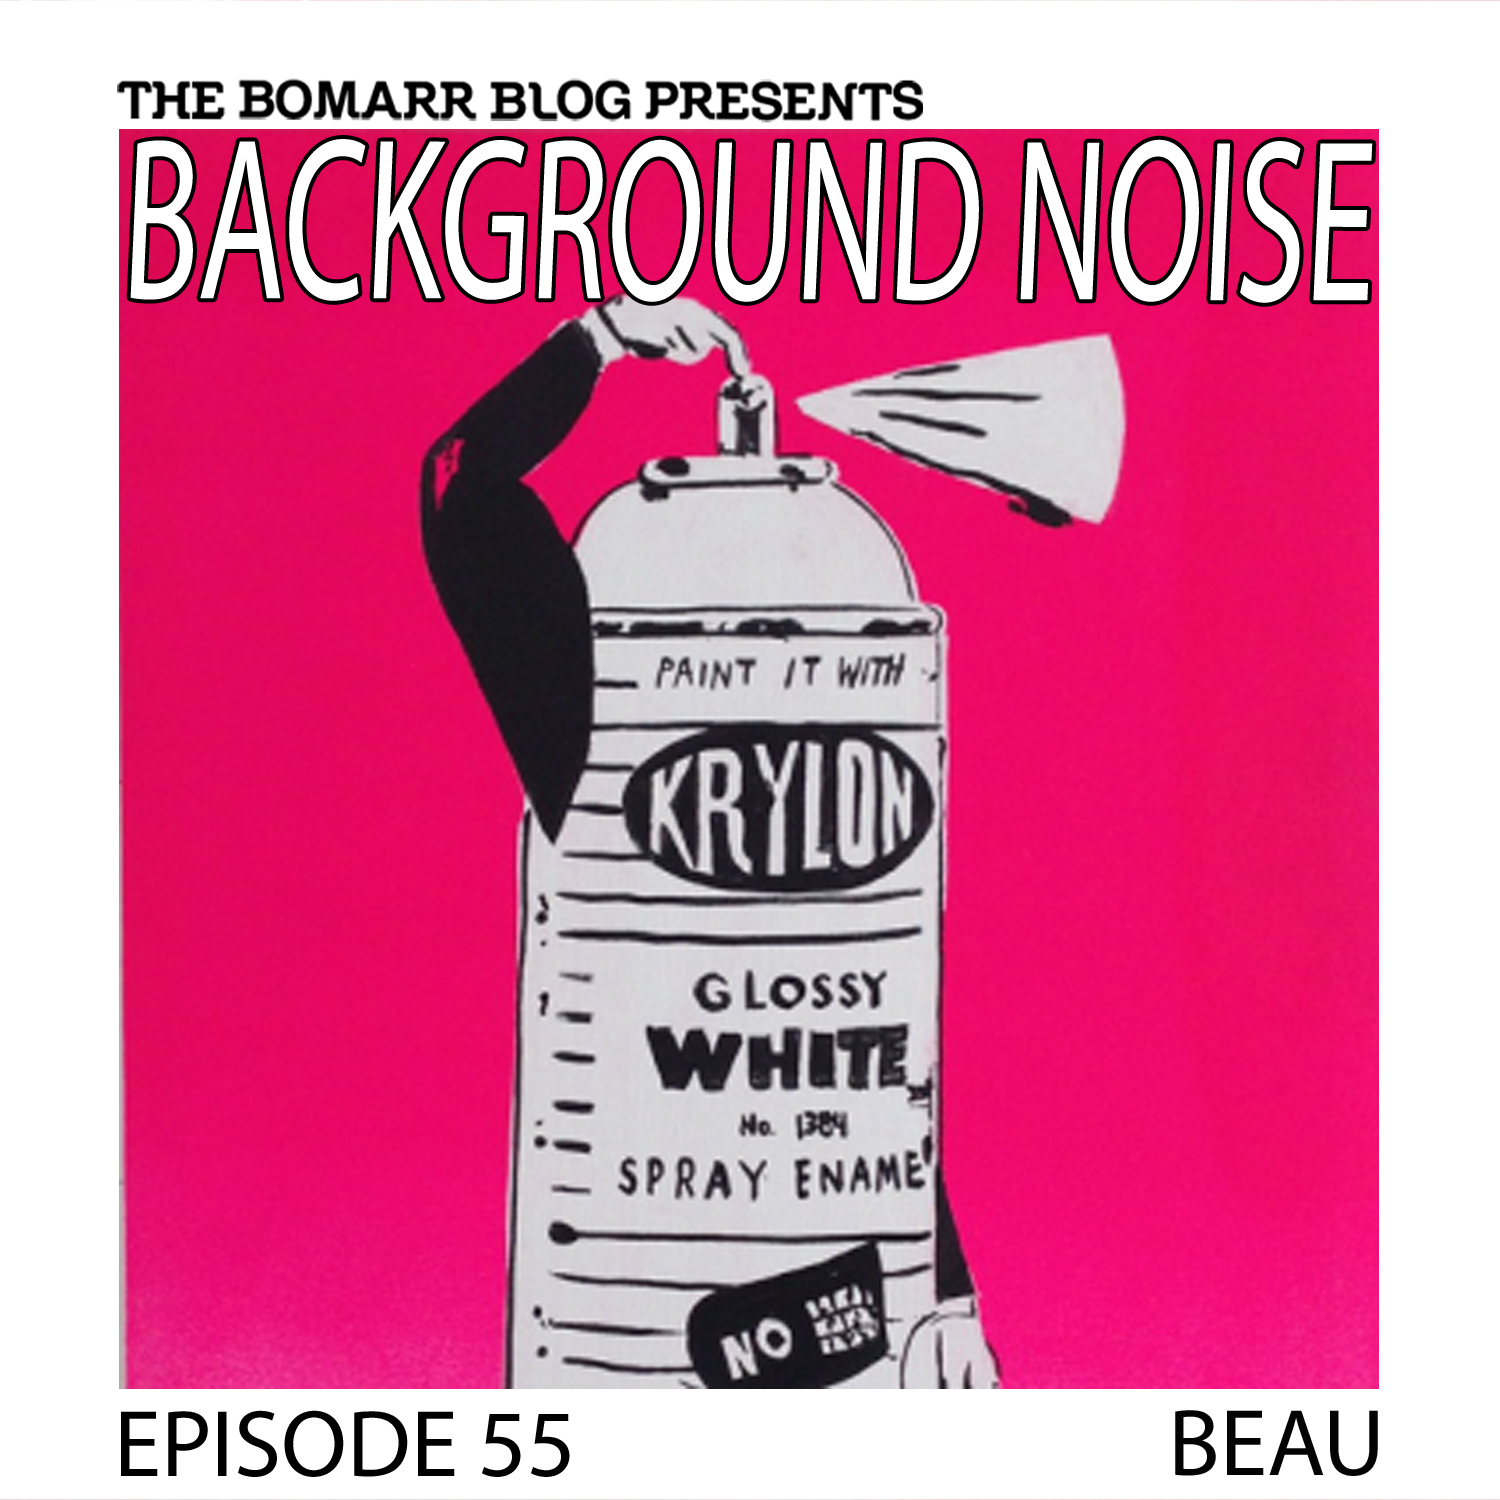 THE BACKGROUND NOISE PODCAST SERIES FOCUSES ON THE MUSIC THAT ARTISTS LISTEN TO WHEN THEY WORK, WHAT MUSIC INSPIRES THEM, OR JUST MUSIC THEY LIKE. THIS WEEK, IN EPISODE 55, THE FOCUS IS ON NEW YORK ARTIST BEAU